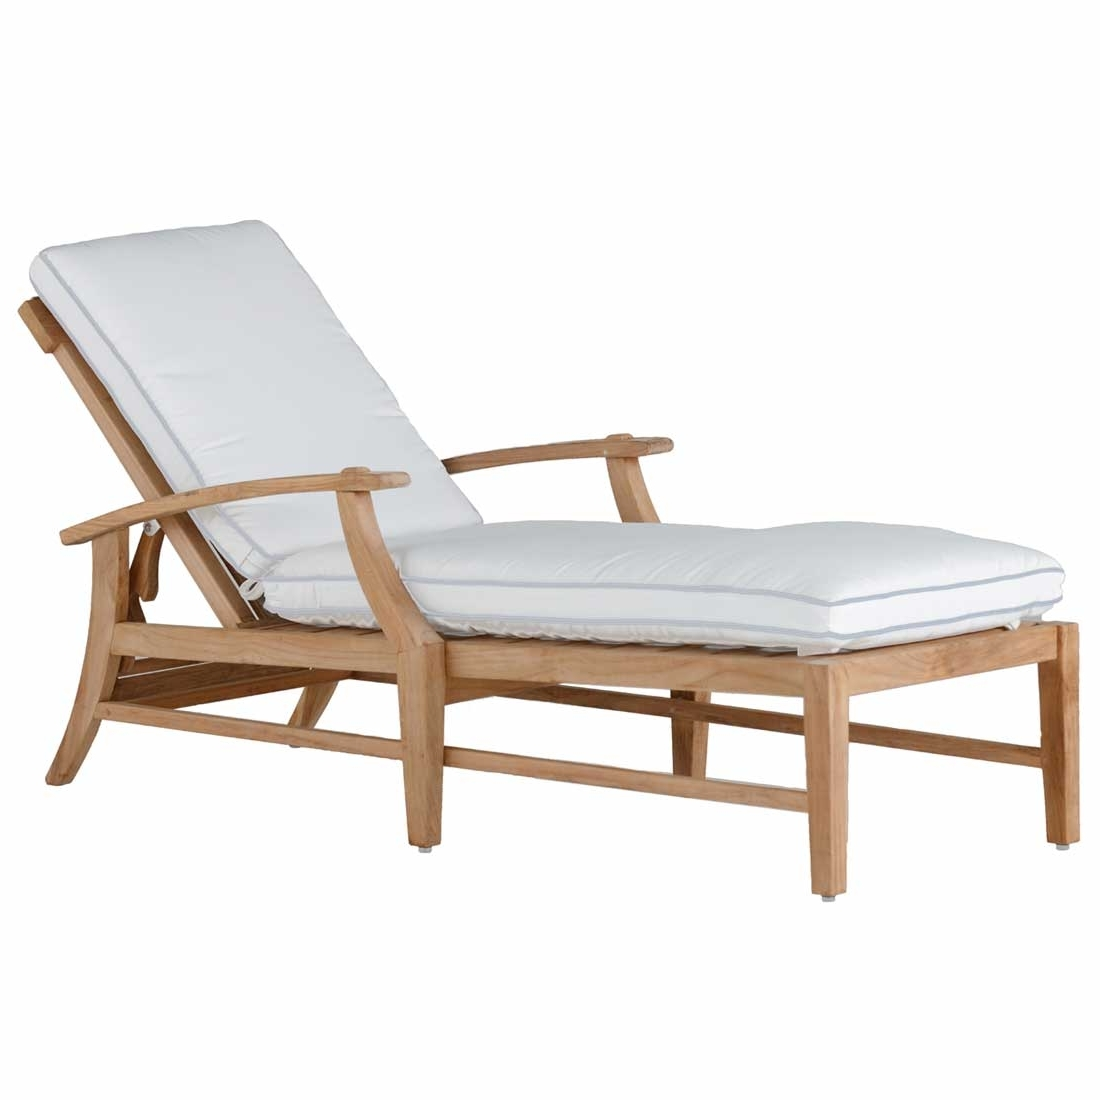 Marvelous Croquet Teak Chaise Summer Classics Contract Throughout Latest Teak Chaise Lounge Chairs (View 3 of 15)